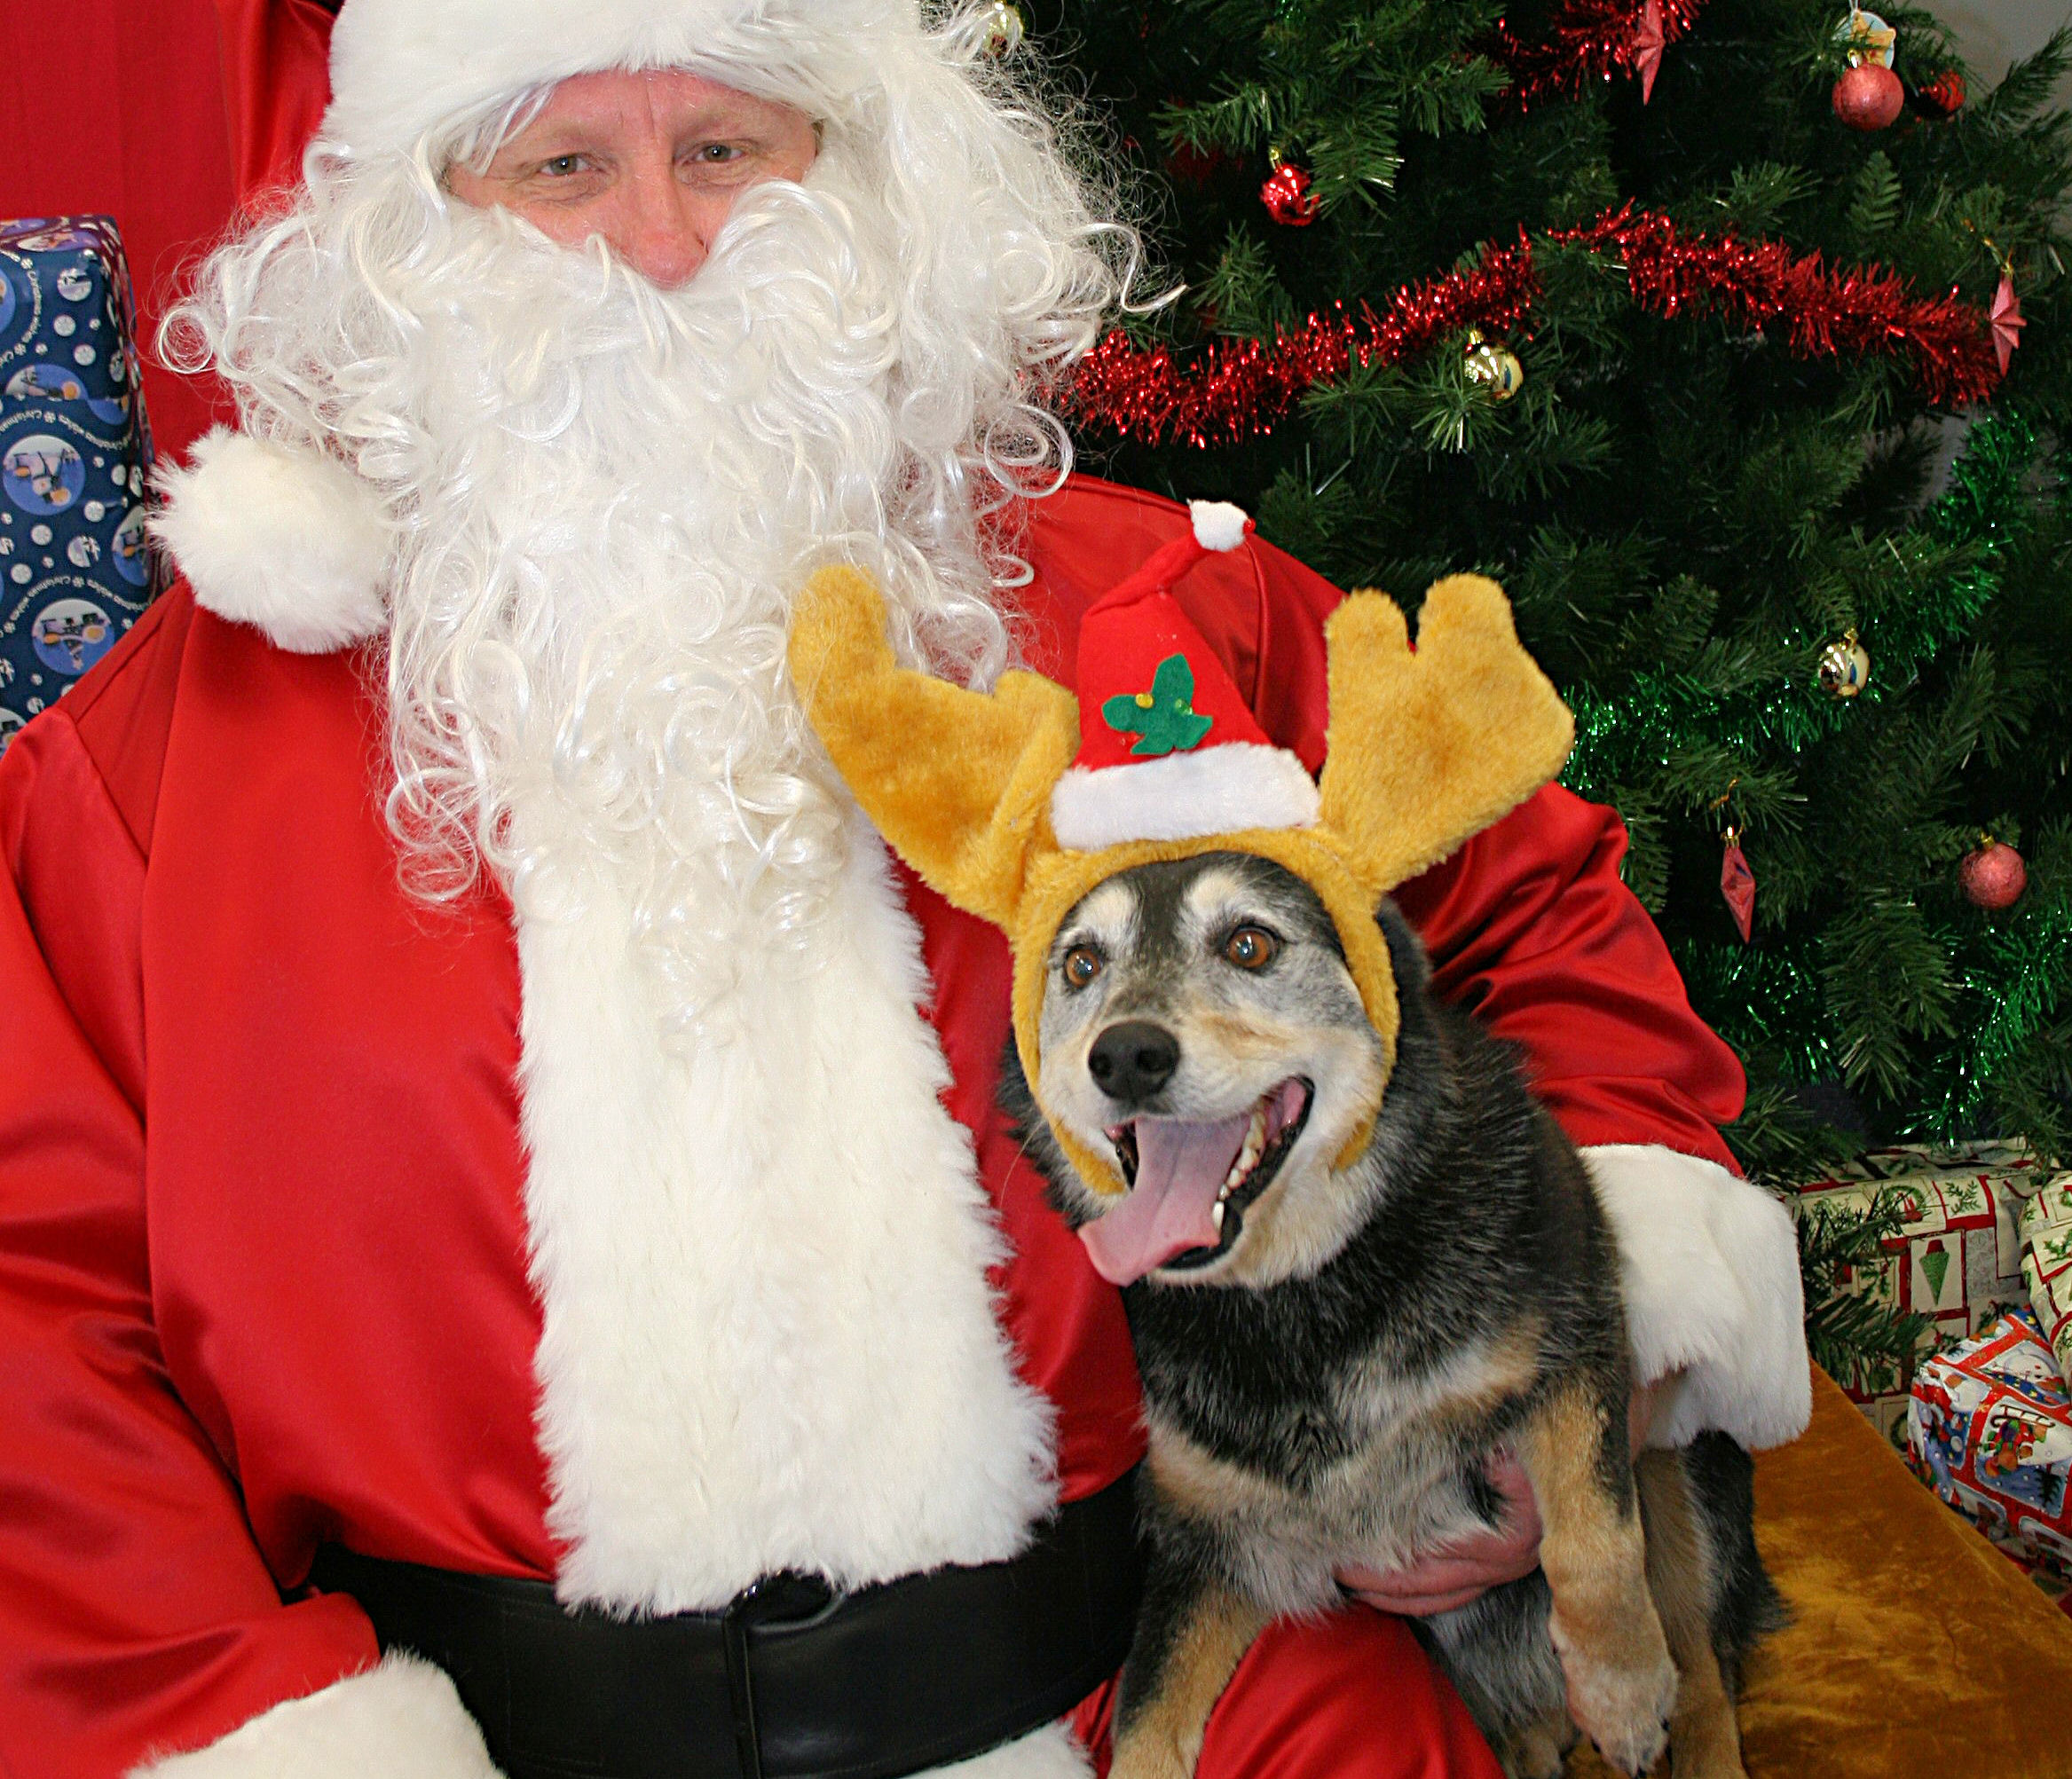 An Australian Cattle Dog in reindeer antlers sits on Santa's lap